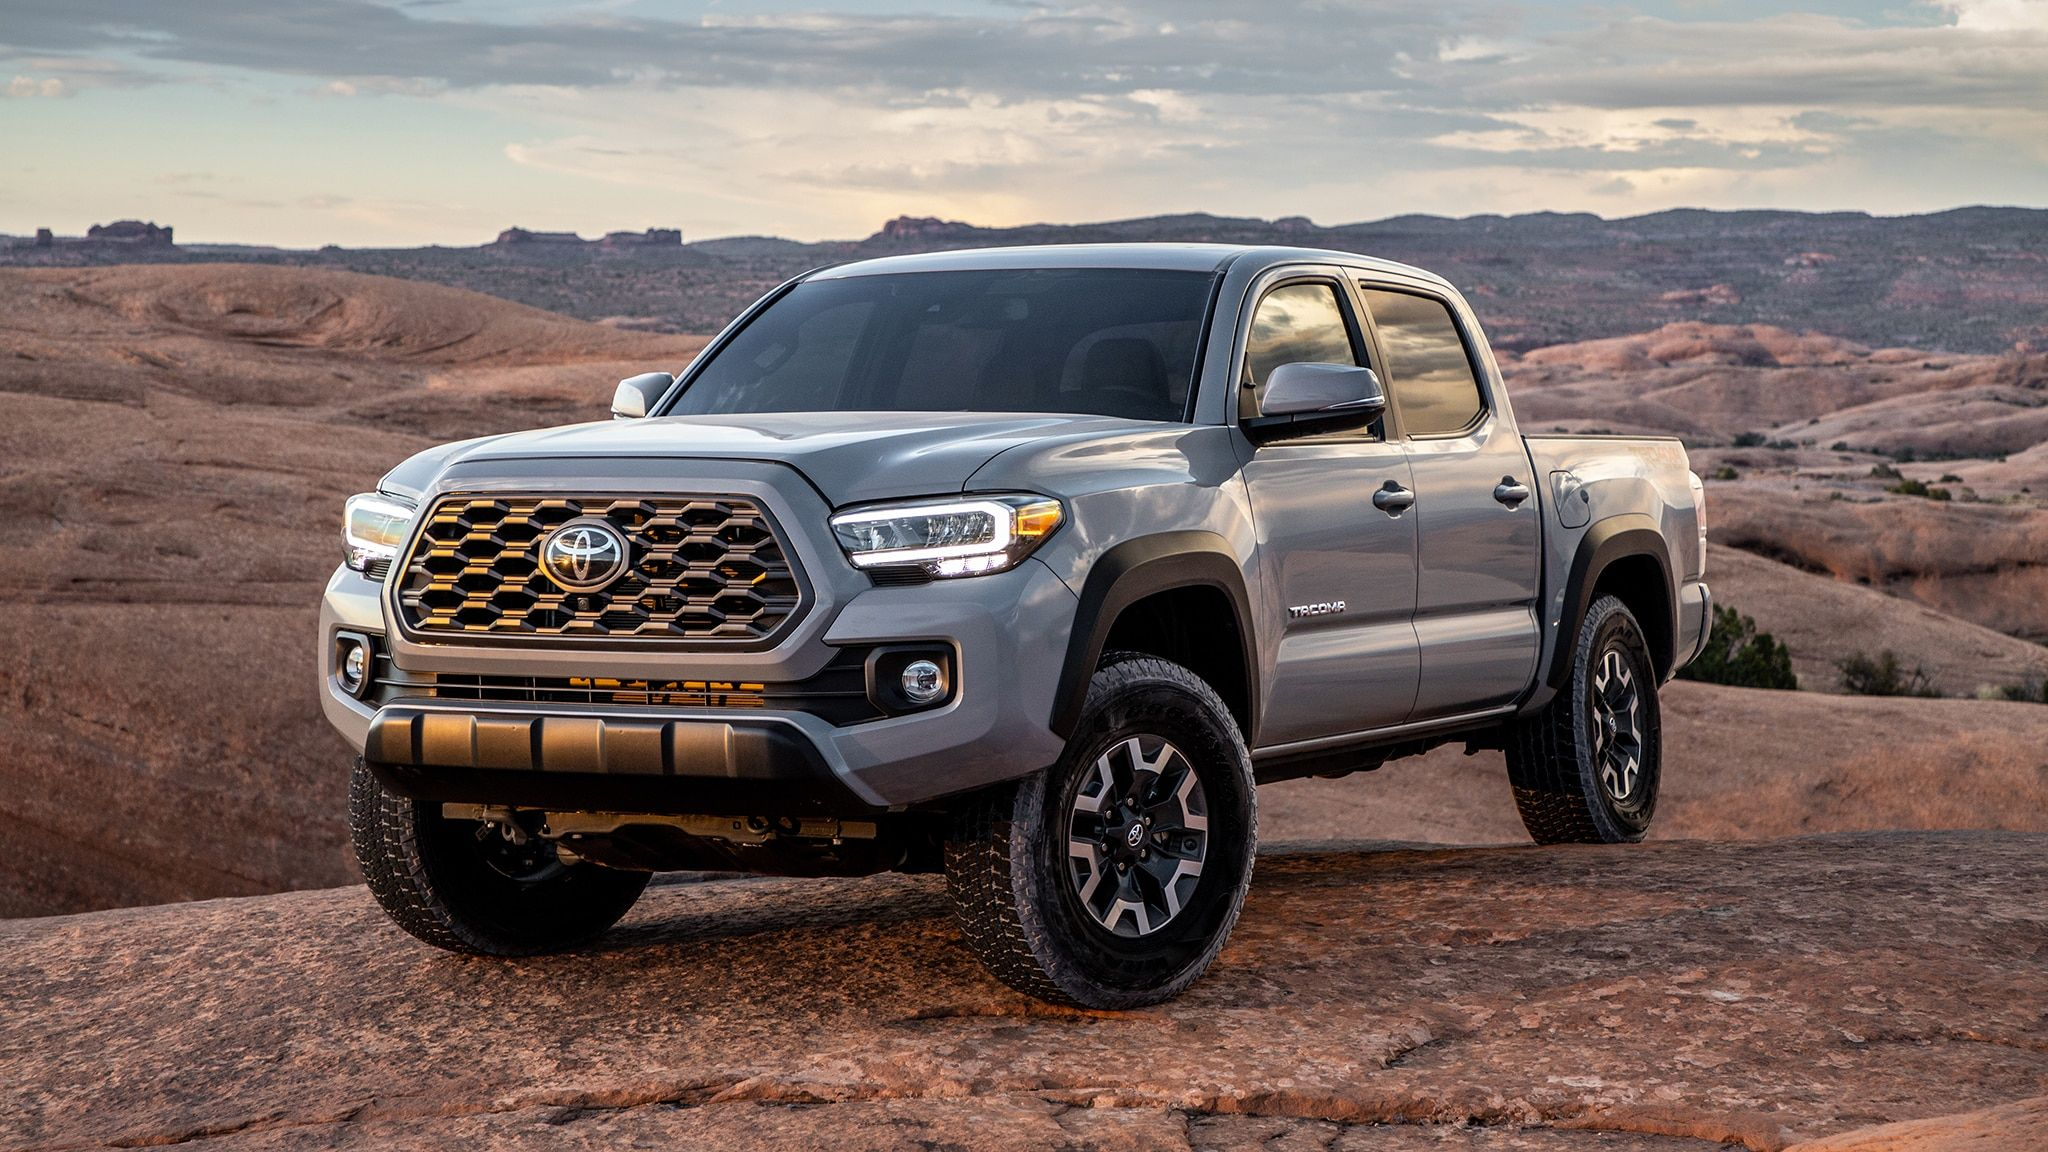 Toyota Offering Cash Back 0 Financing On 2020 Tacoma Pickups In 2020 Toyota Tacoma Trd Tacoma Truck Toyota Tacoma Trd Sport